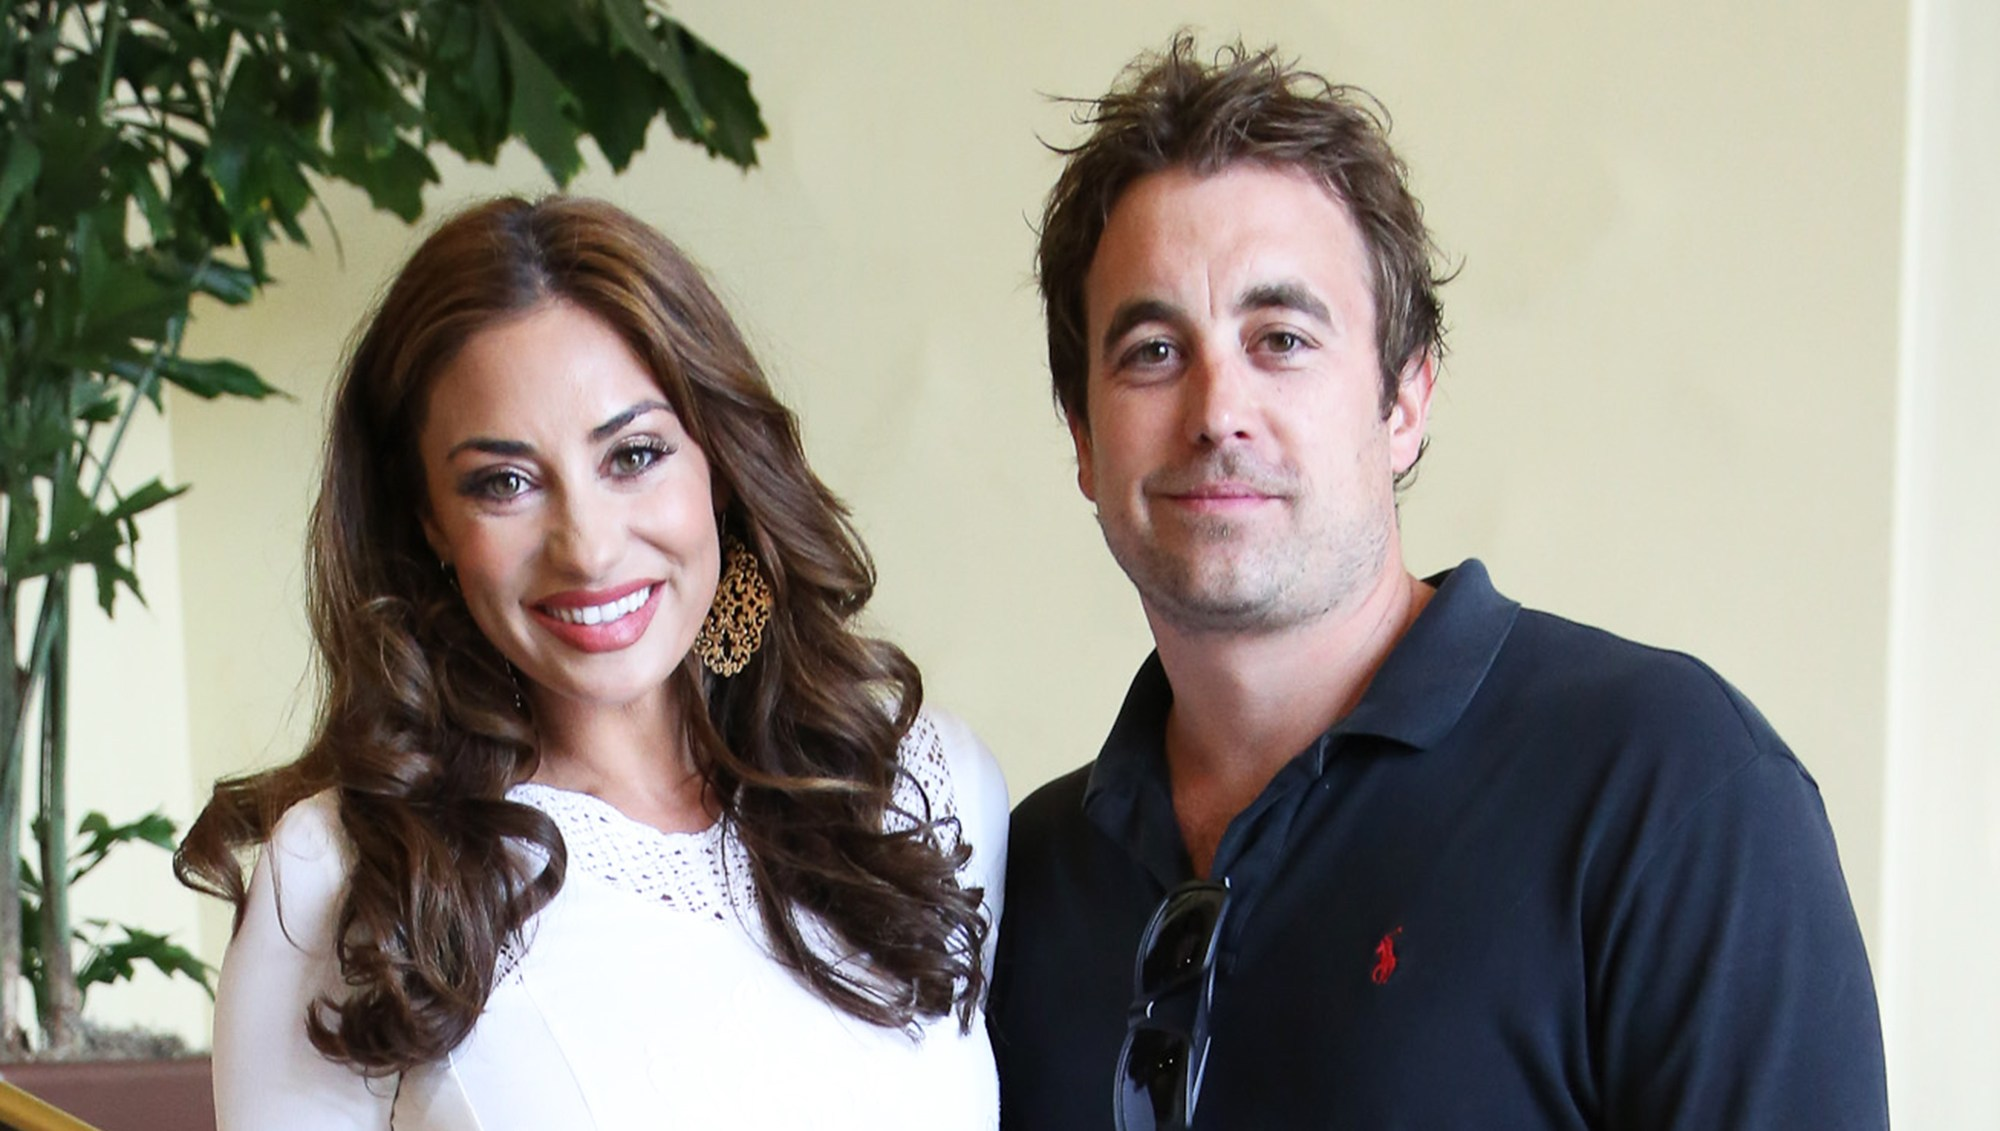 'RHOC' Alum Lizzie Rovsek and Estranged Husband Christian Are Still Living Together Amid 'Nasty' Divorce